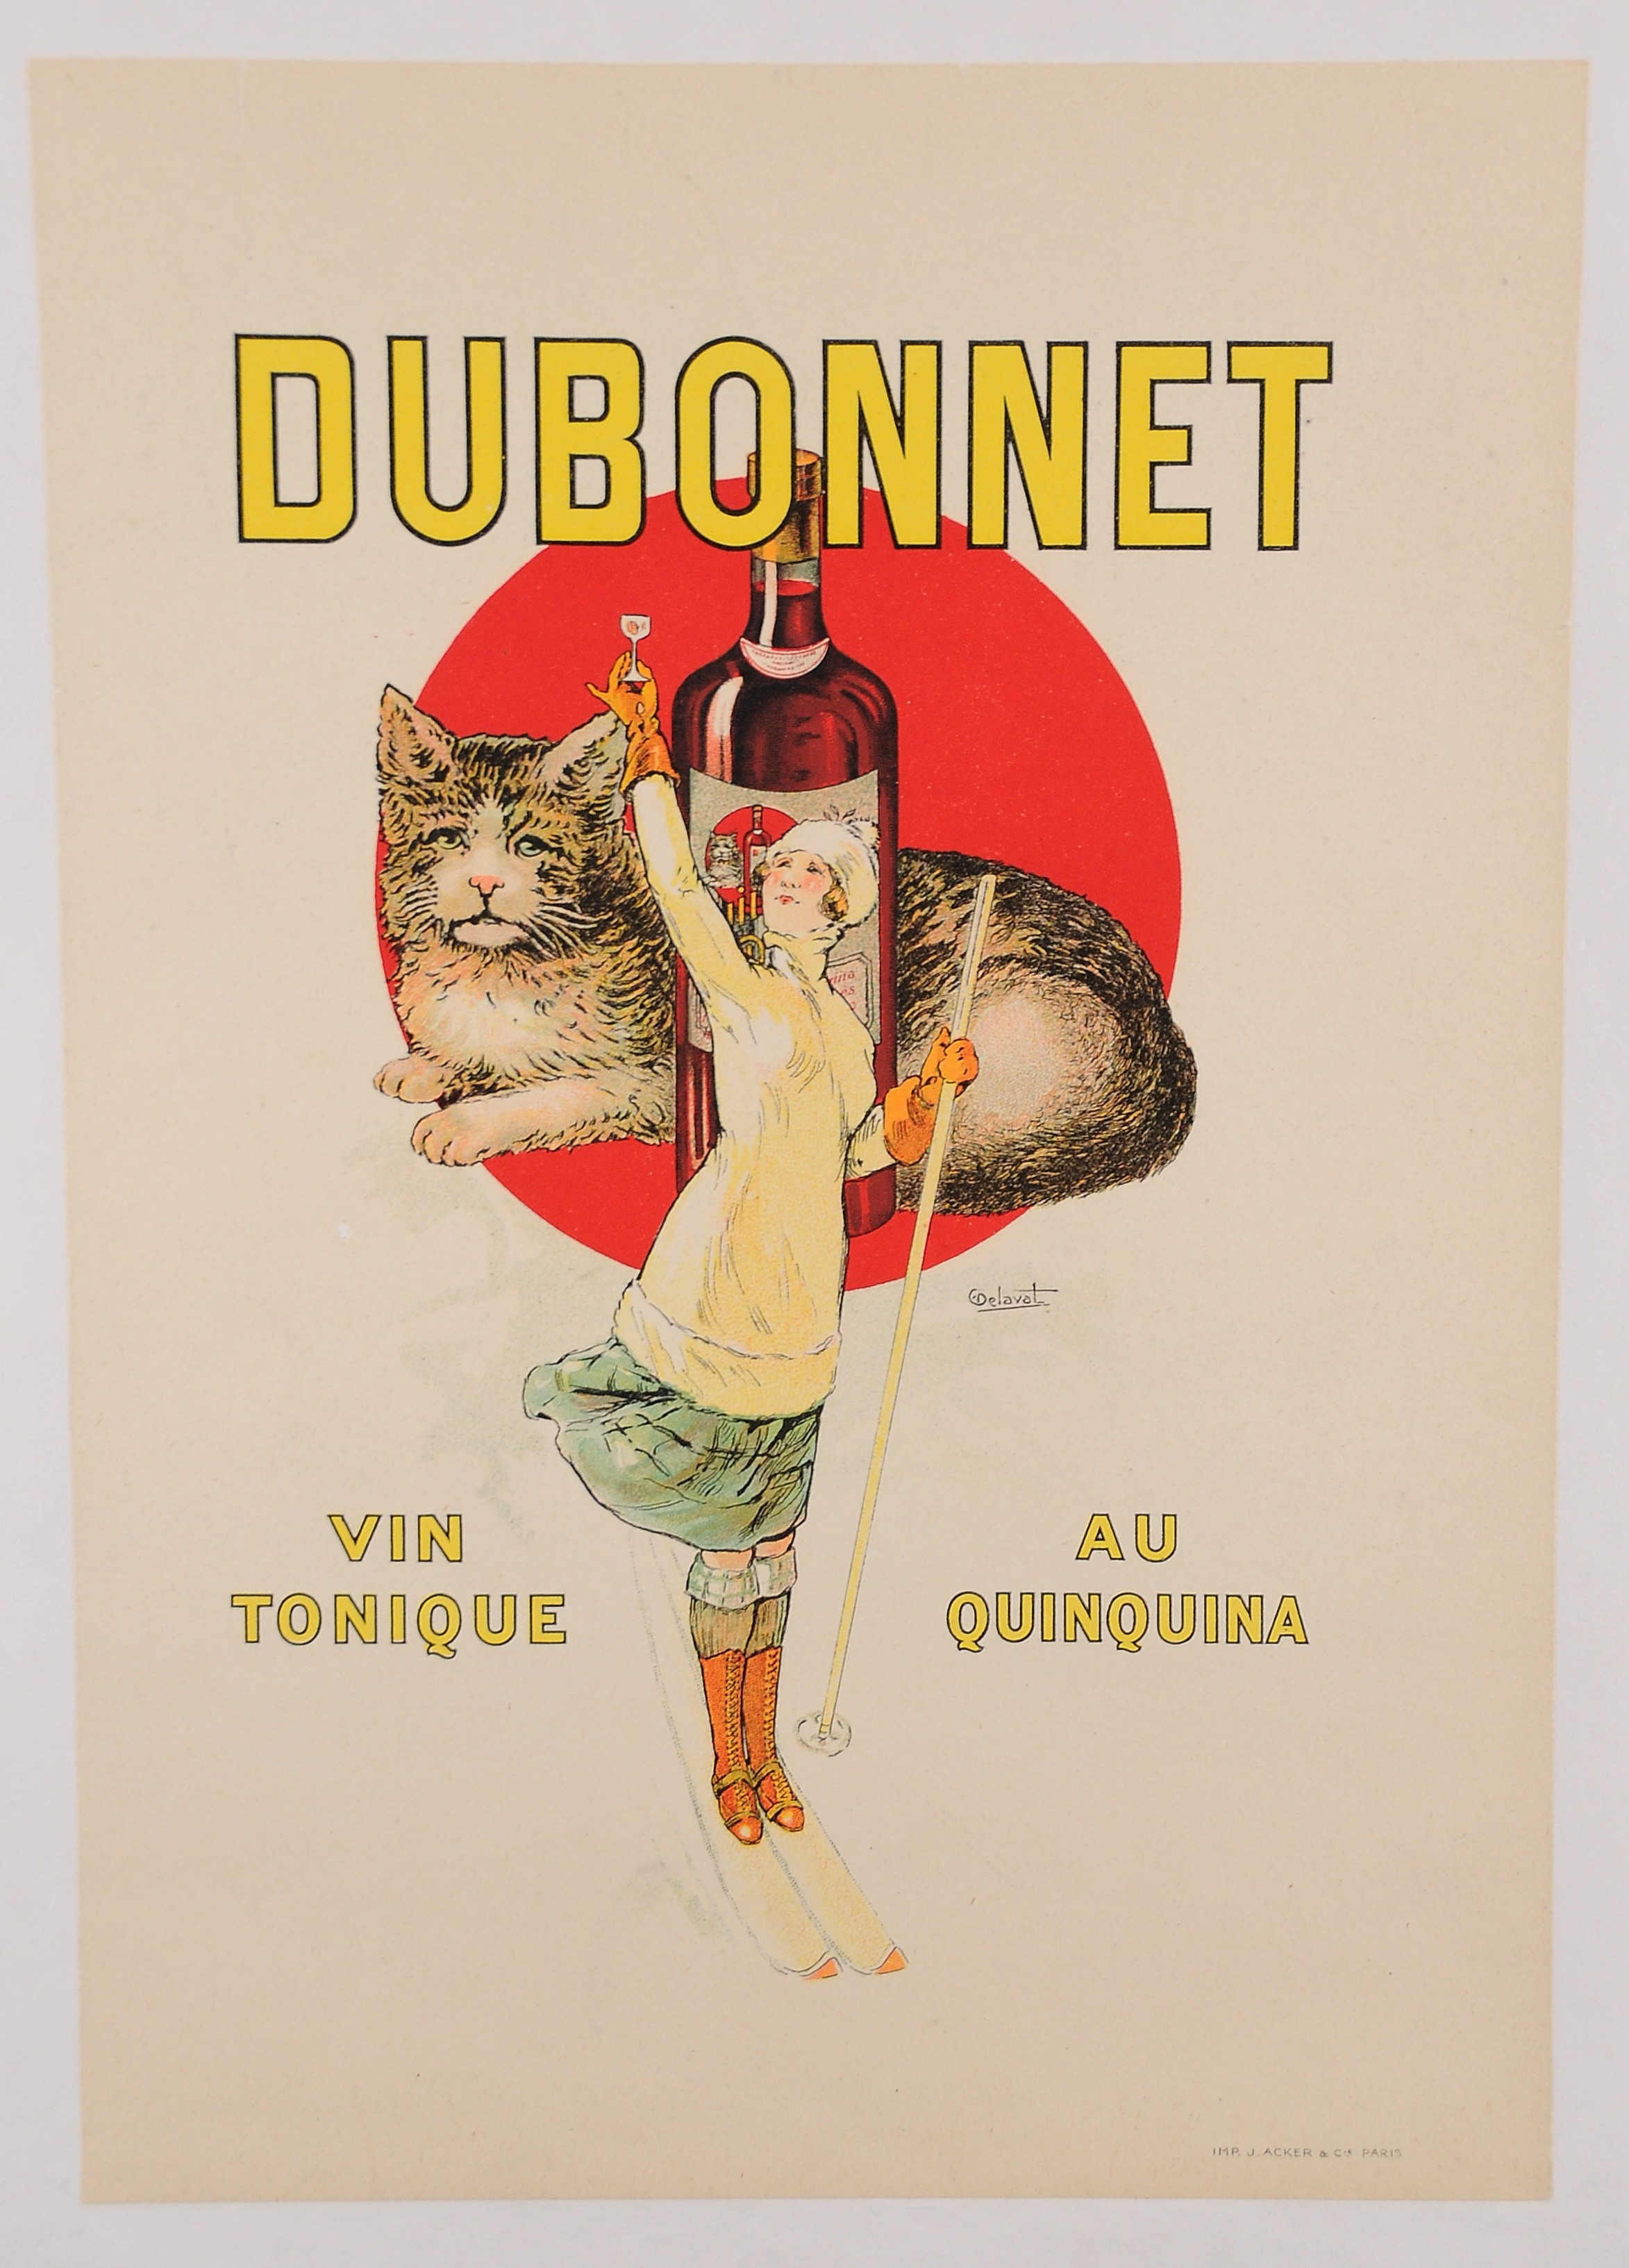 Original Vintage French Alcohol Drink Advertising Poster Dubonnet